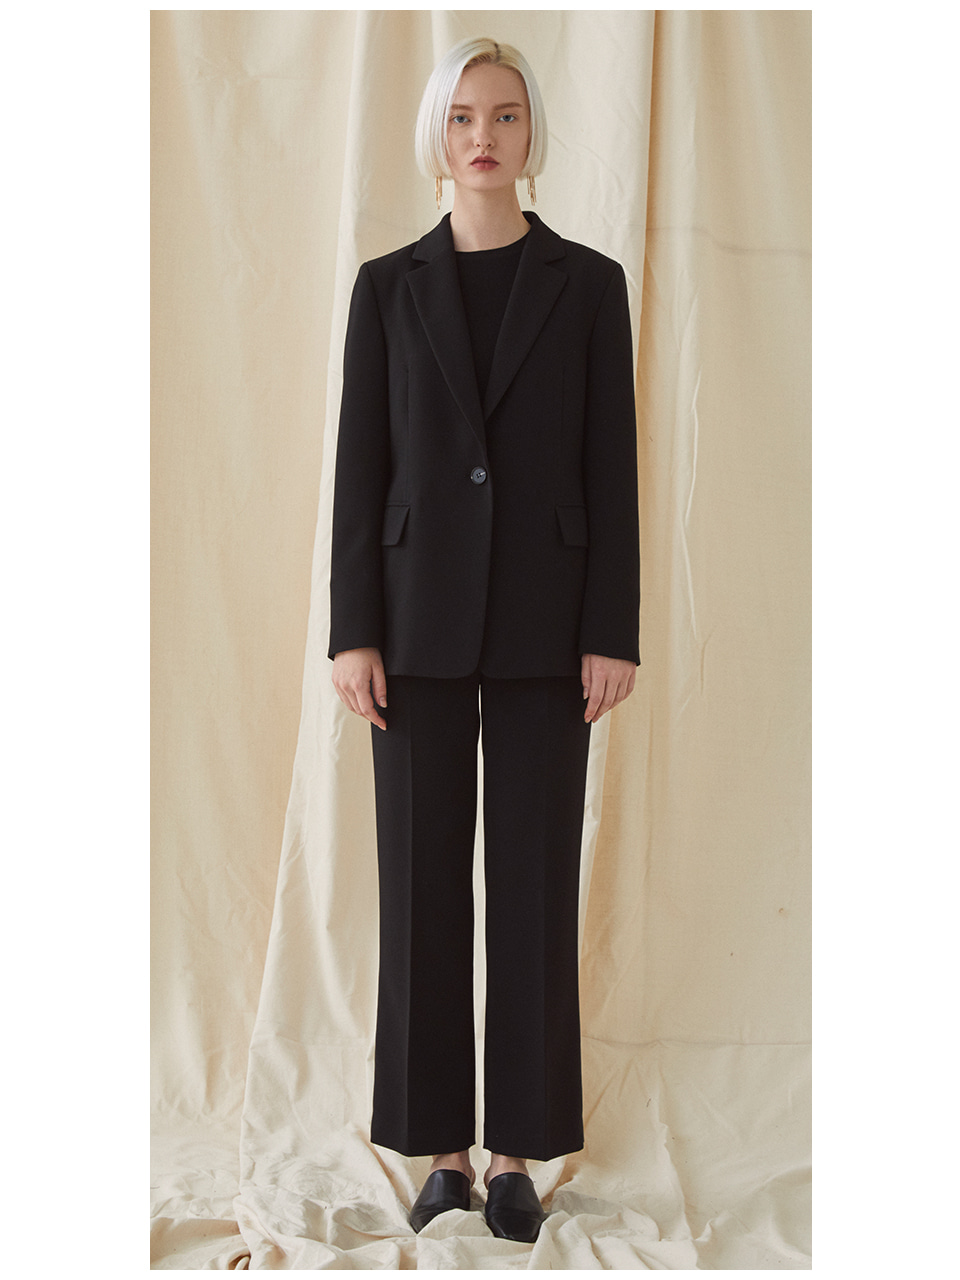 [SET]Basic Suit - Black